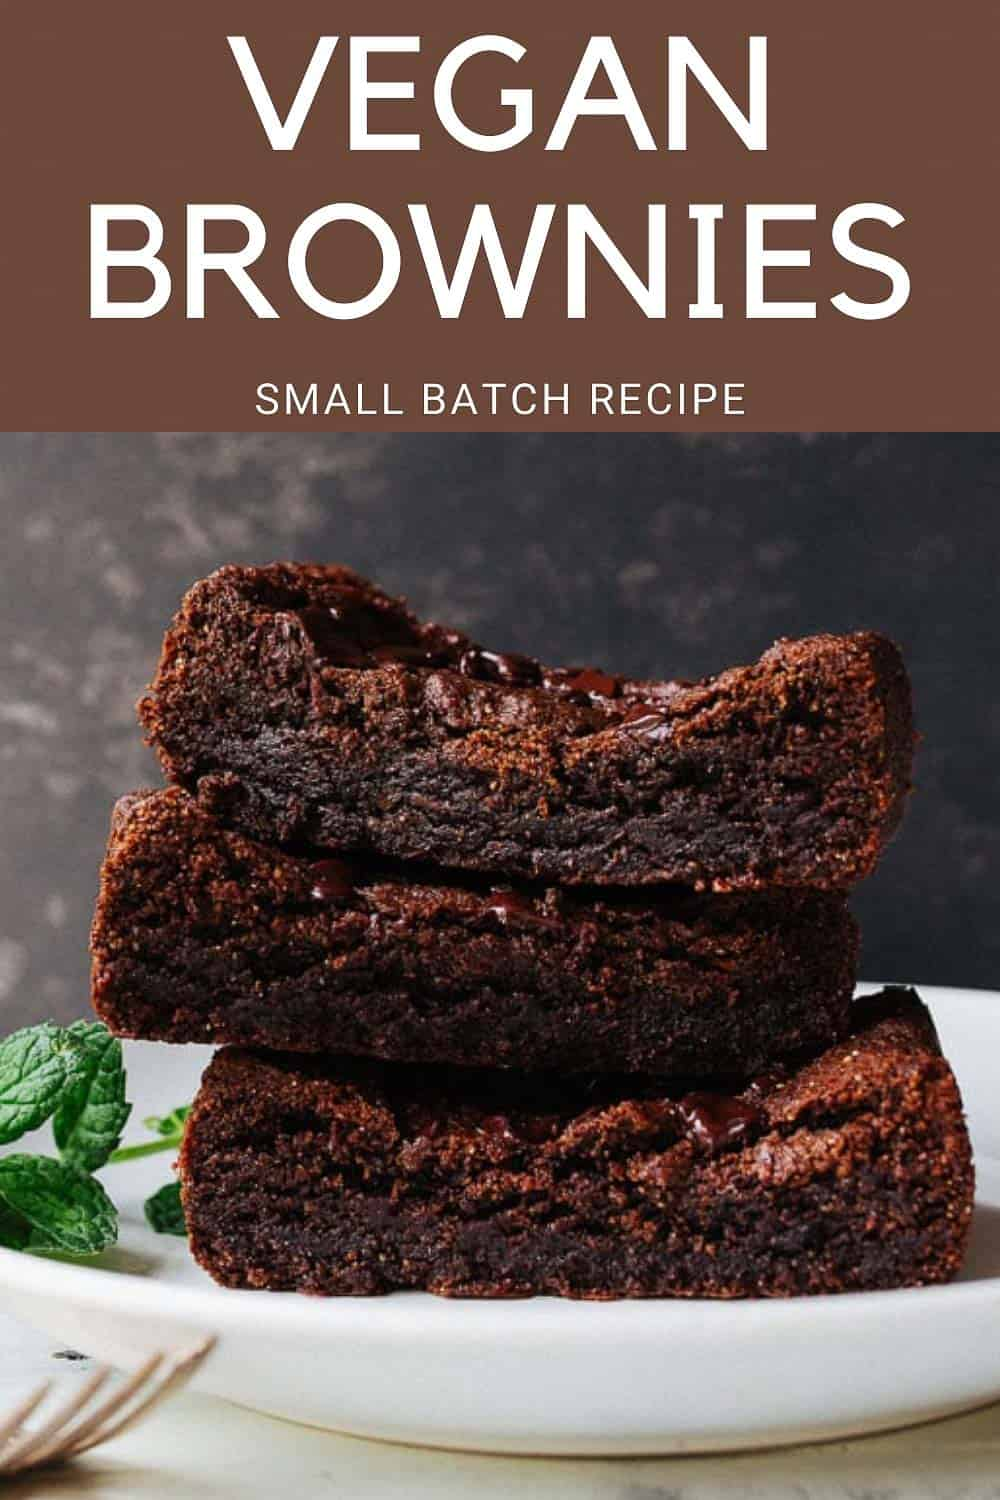 Small batch vegan brownies made with just almond butter, maple syrup, and cocoa powder. Crazy, right? Crazy good!